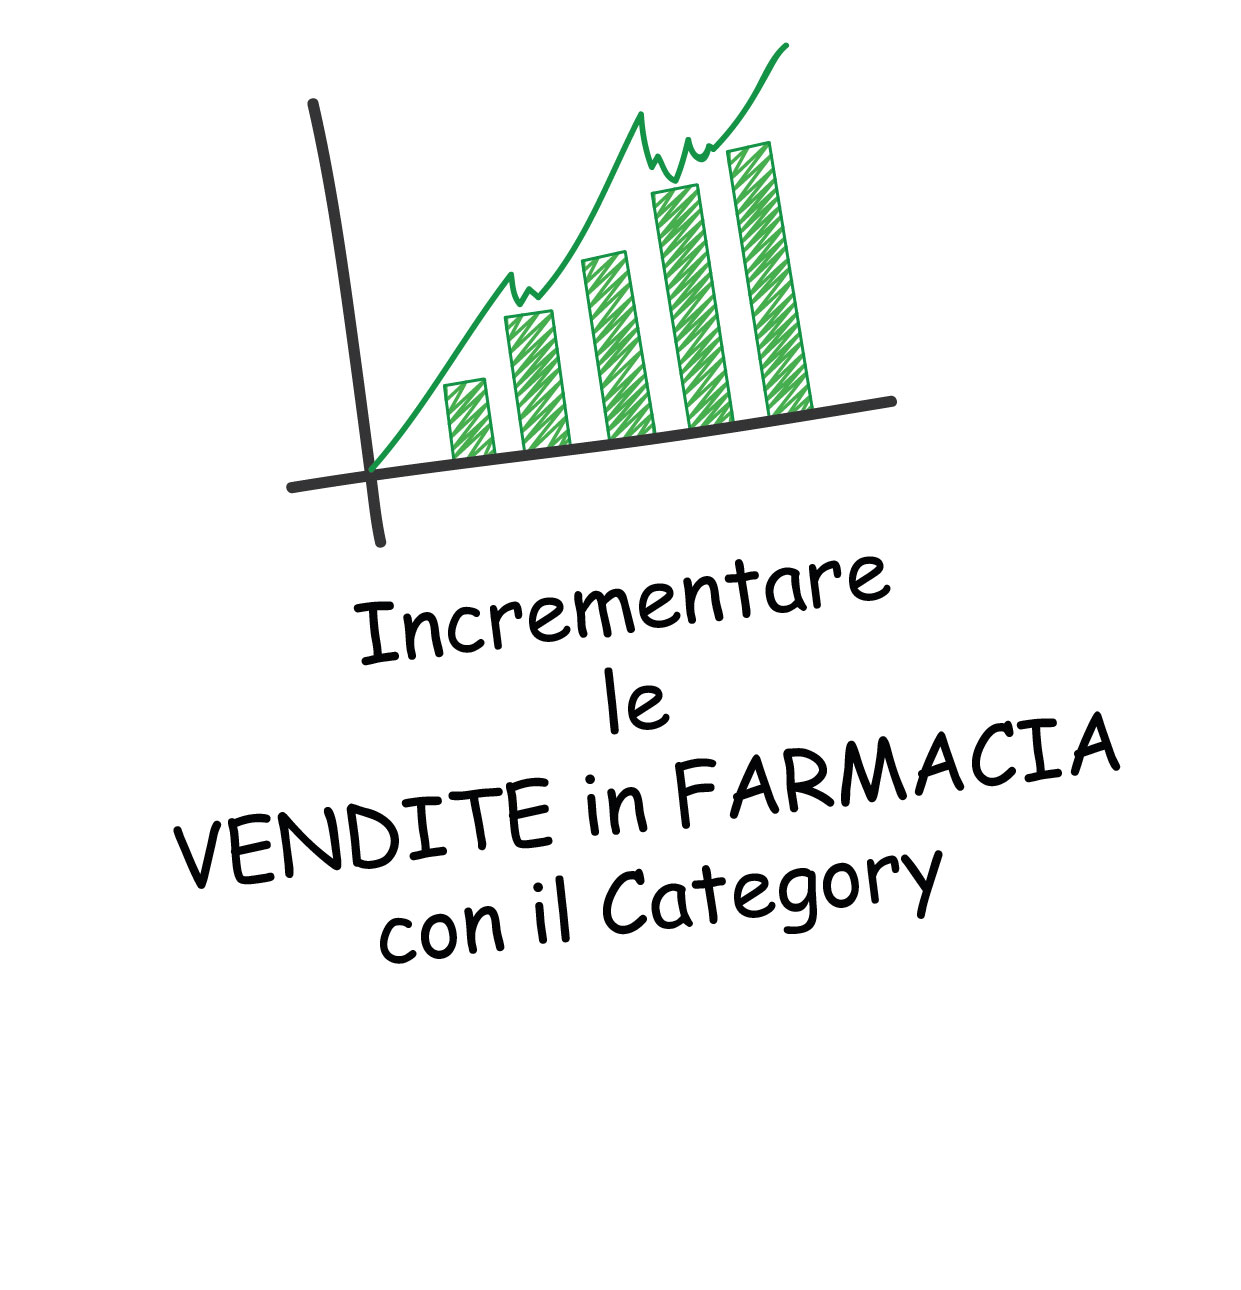 category in farmacia